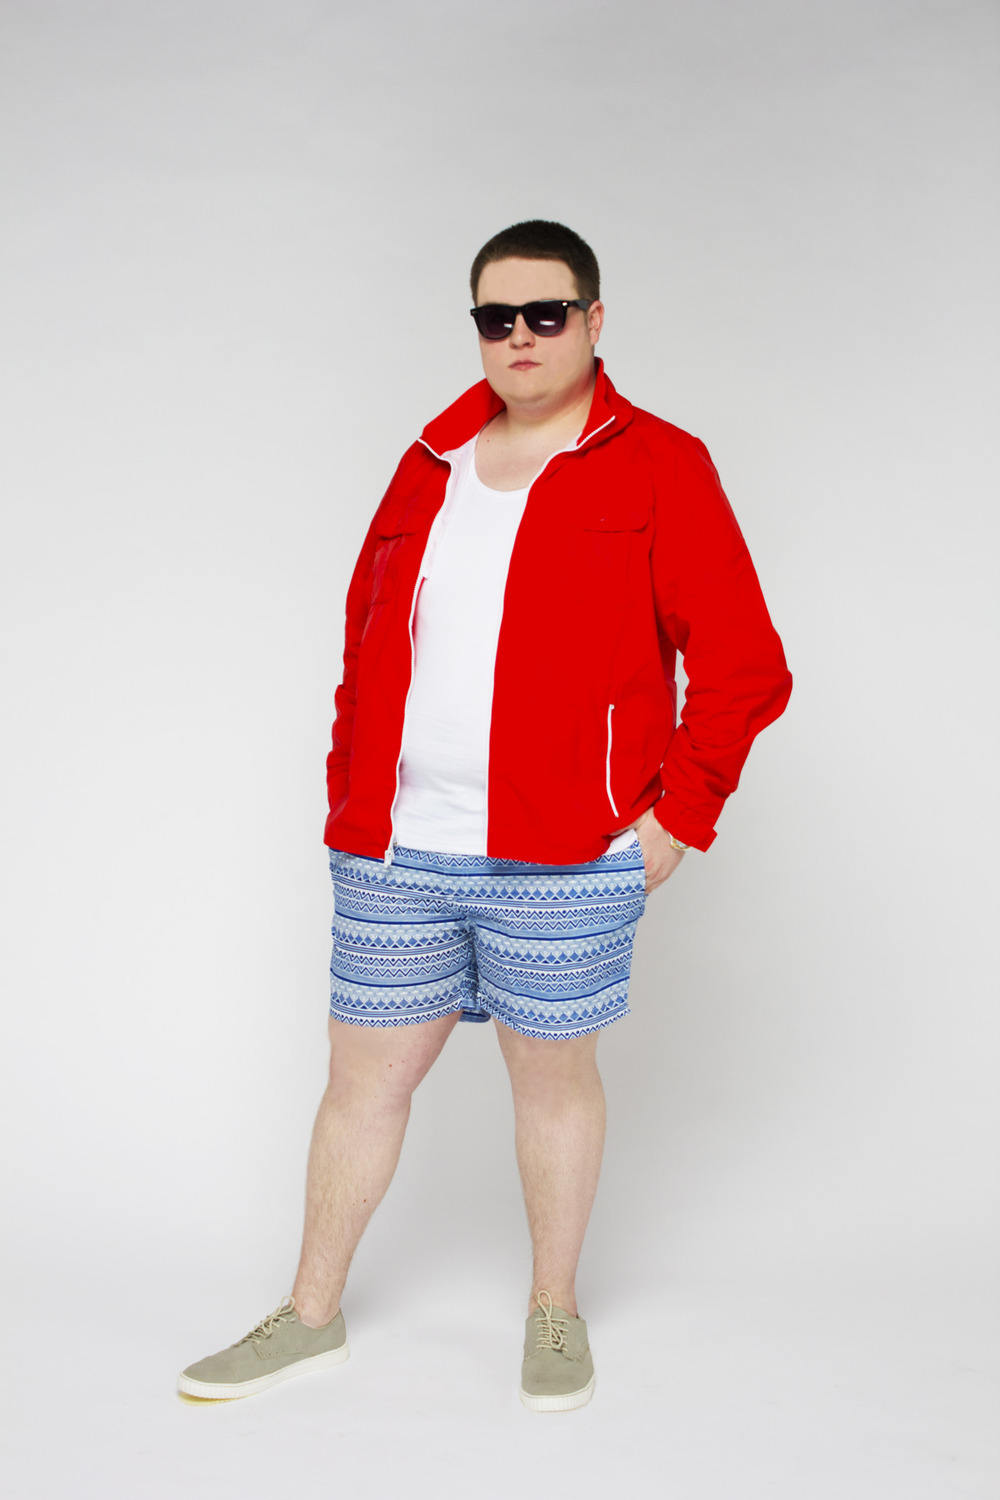 Plus Size Teen Clothing. Keep your style right on trend with plus size teen clothing. With many pieces to mix and match, you'll take your look to a whole new level.